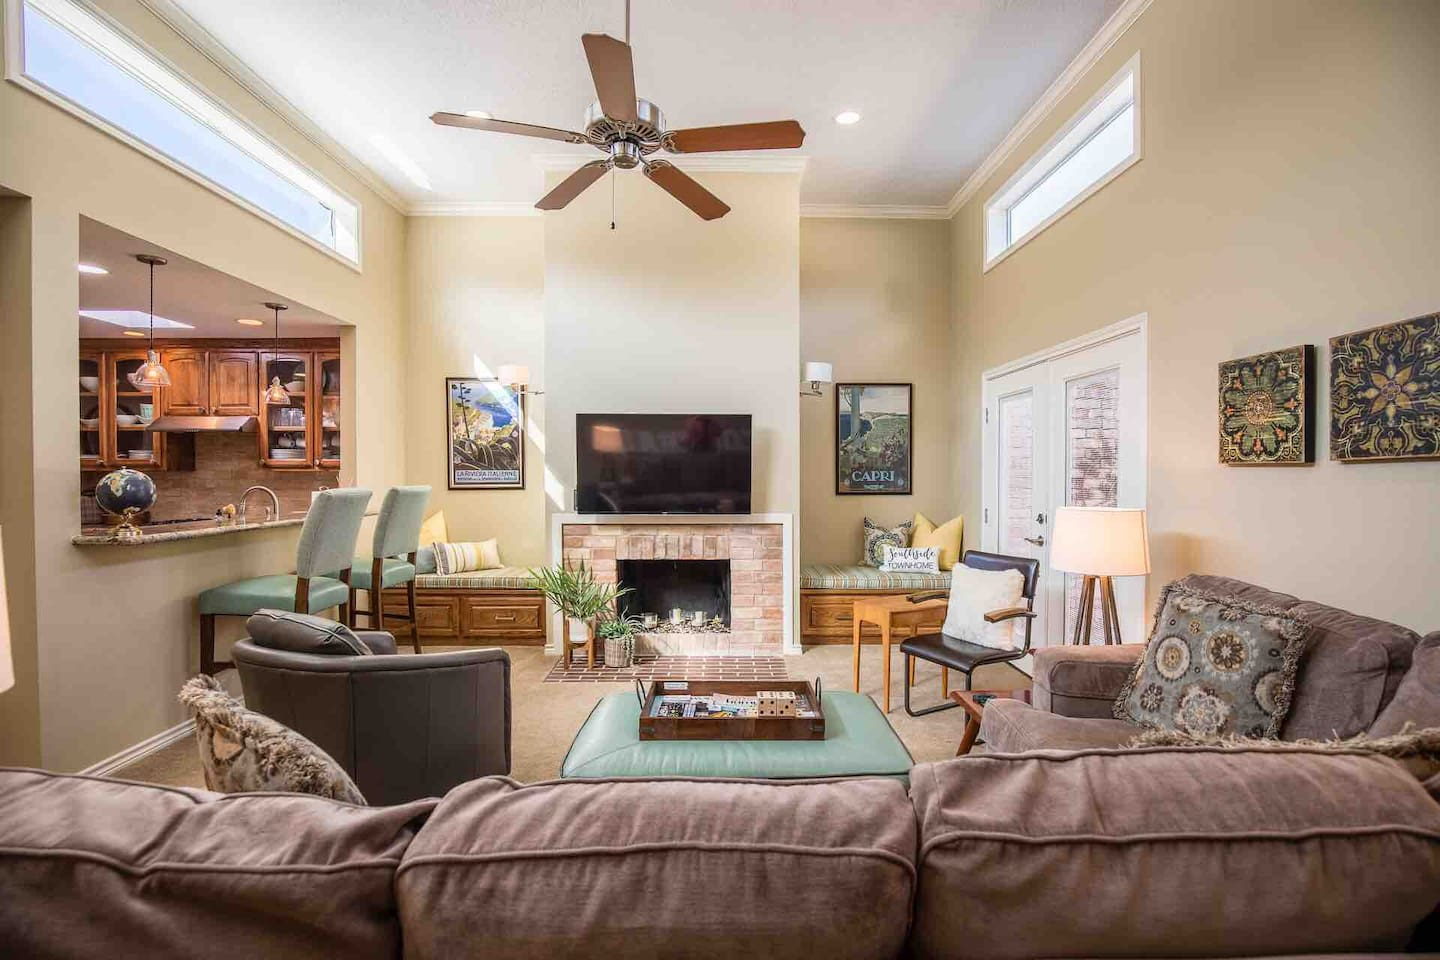 Spacious, sunlit living room with courtyard access and custom furnishings. Designed for relaxing and visiting with friends and family.  Vintage pieces add personality to the California contemporary space.